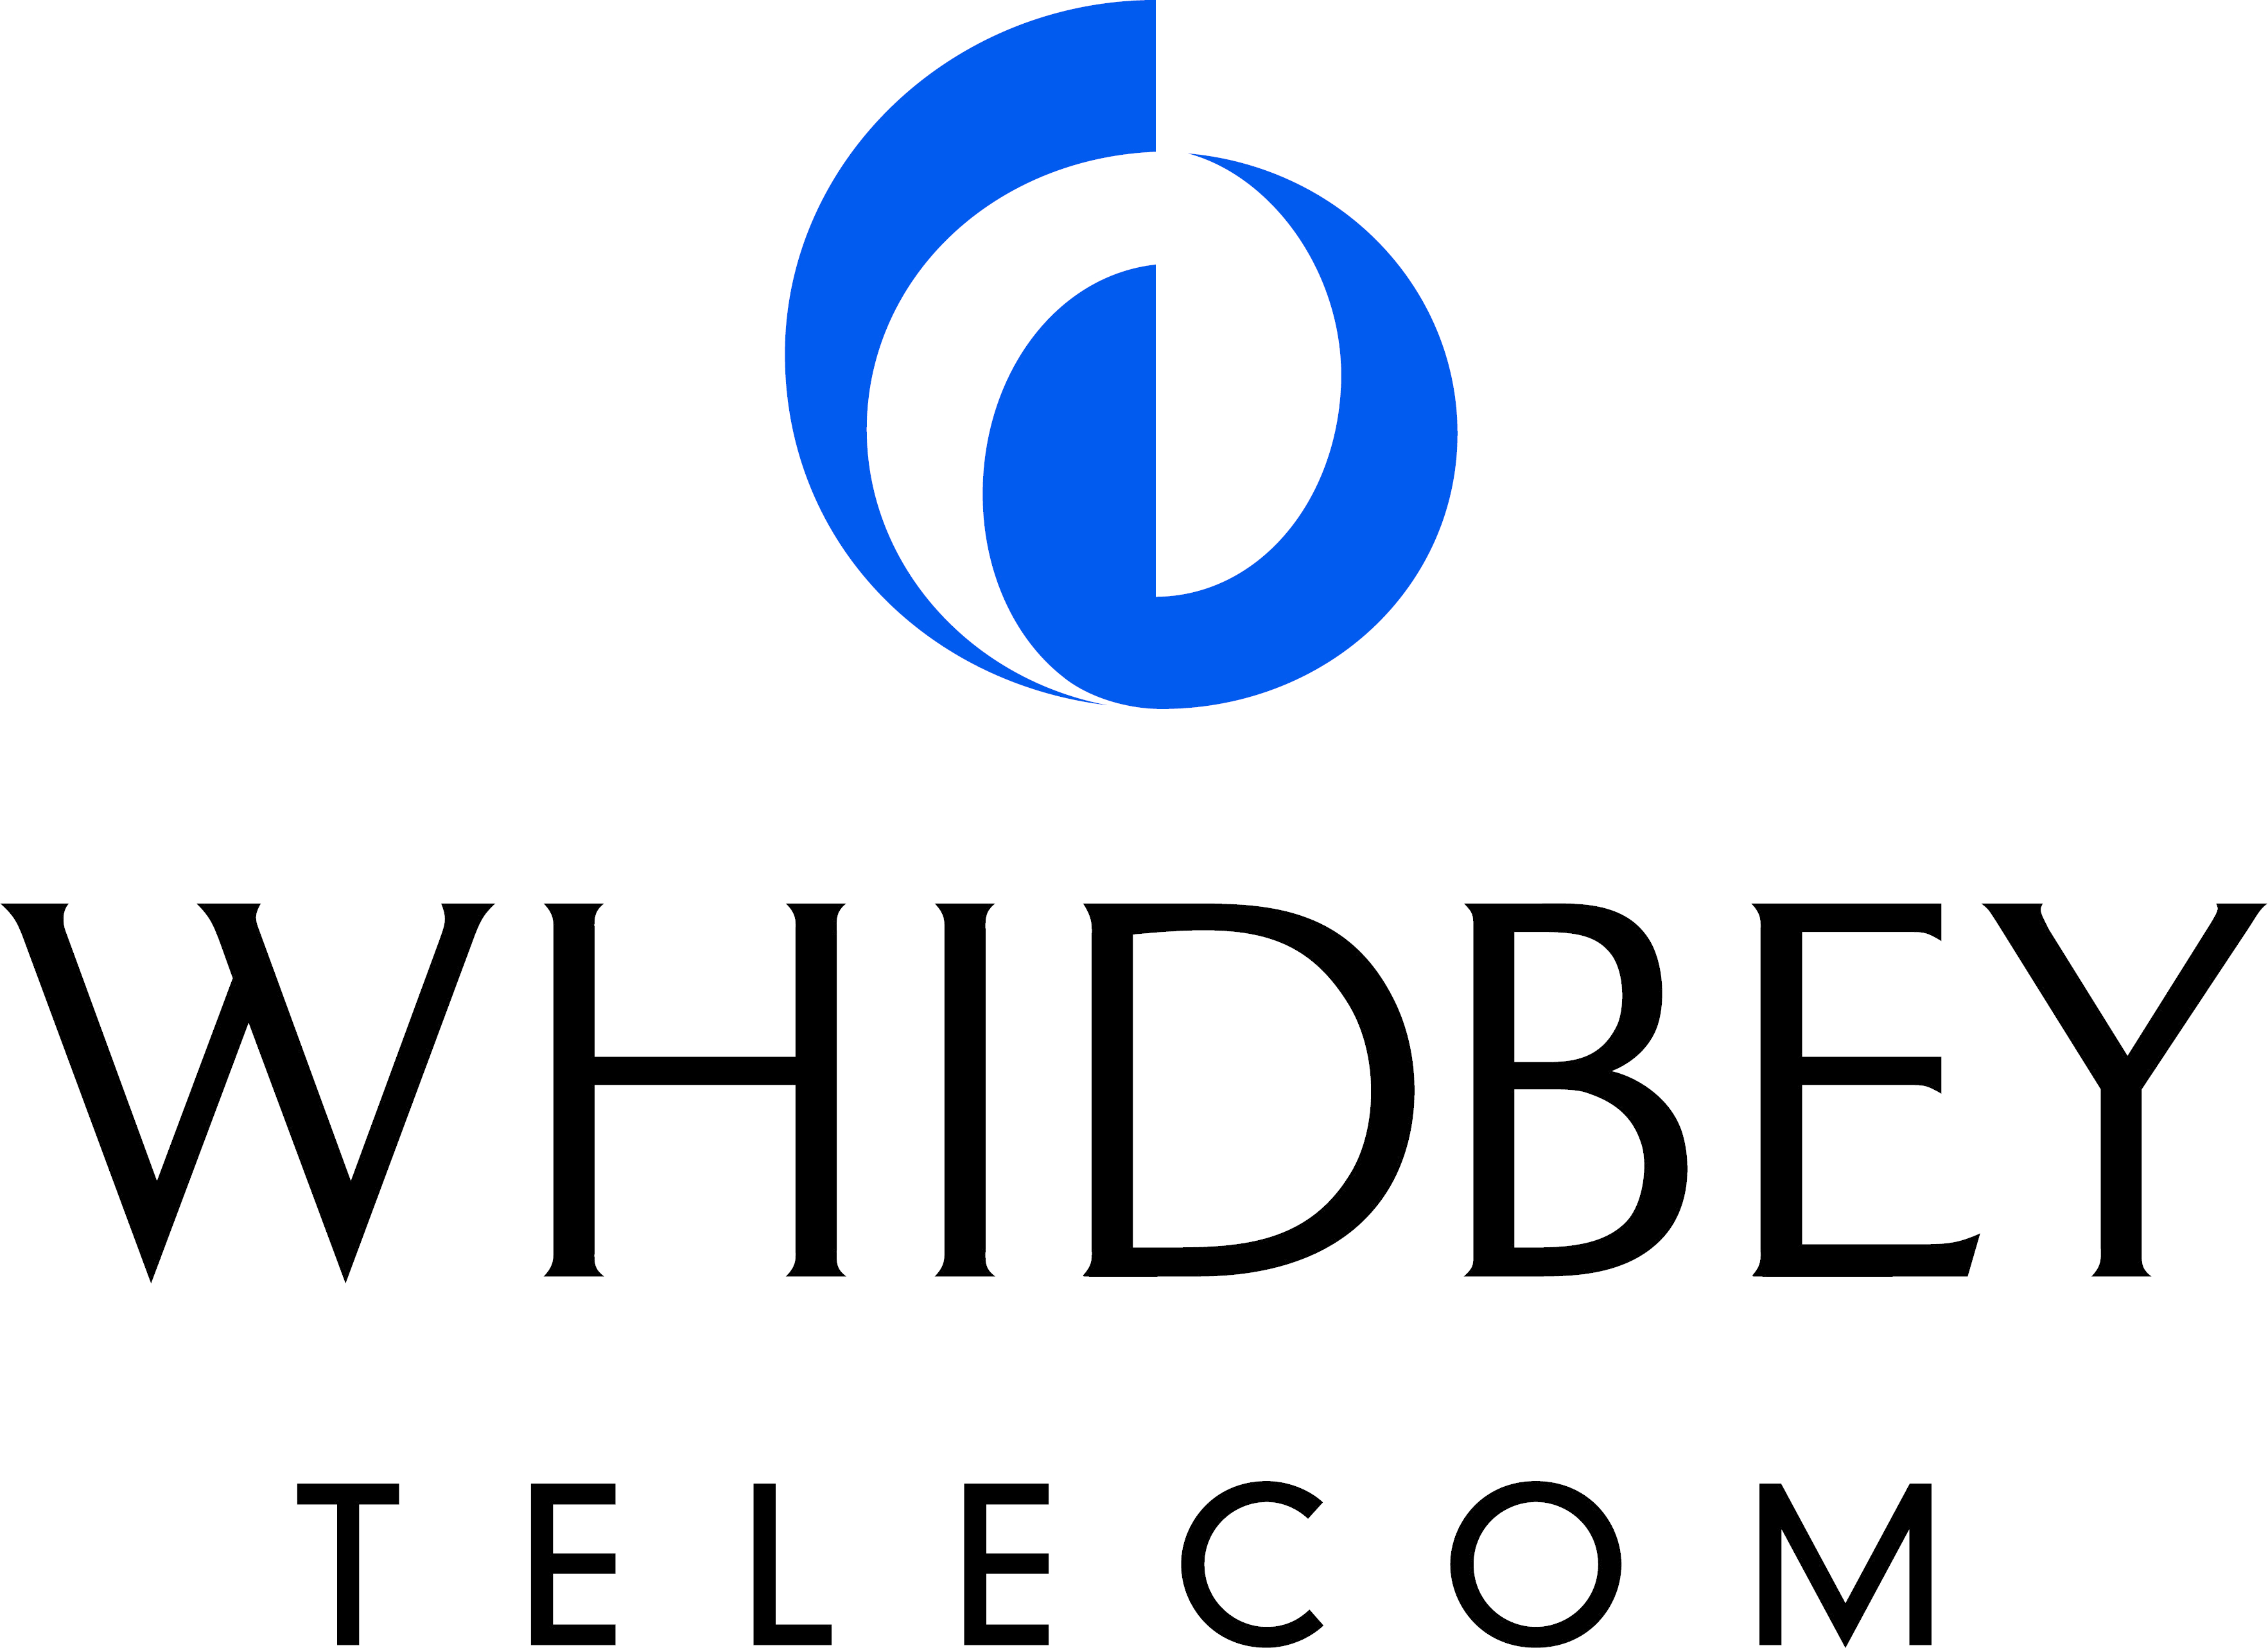 Whidbey Telecom in Freeland, WA - DISH Authorized Retailer